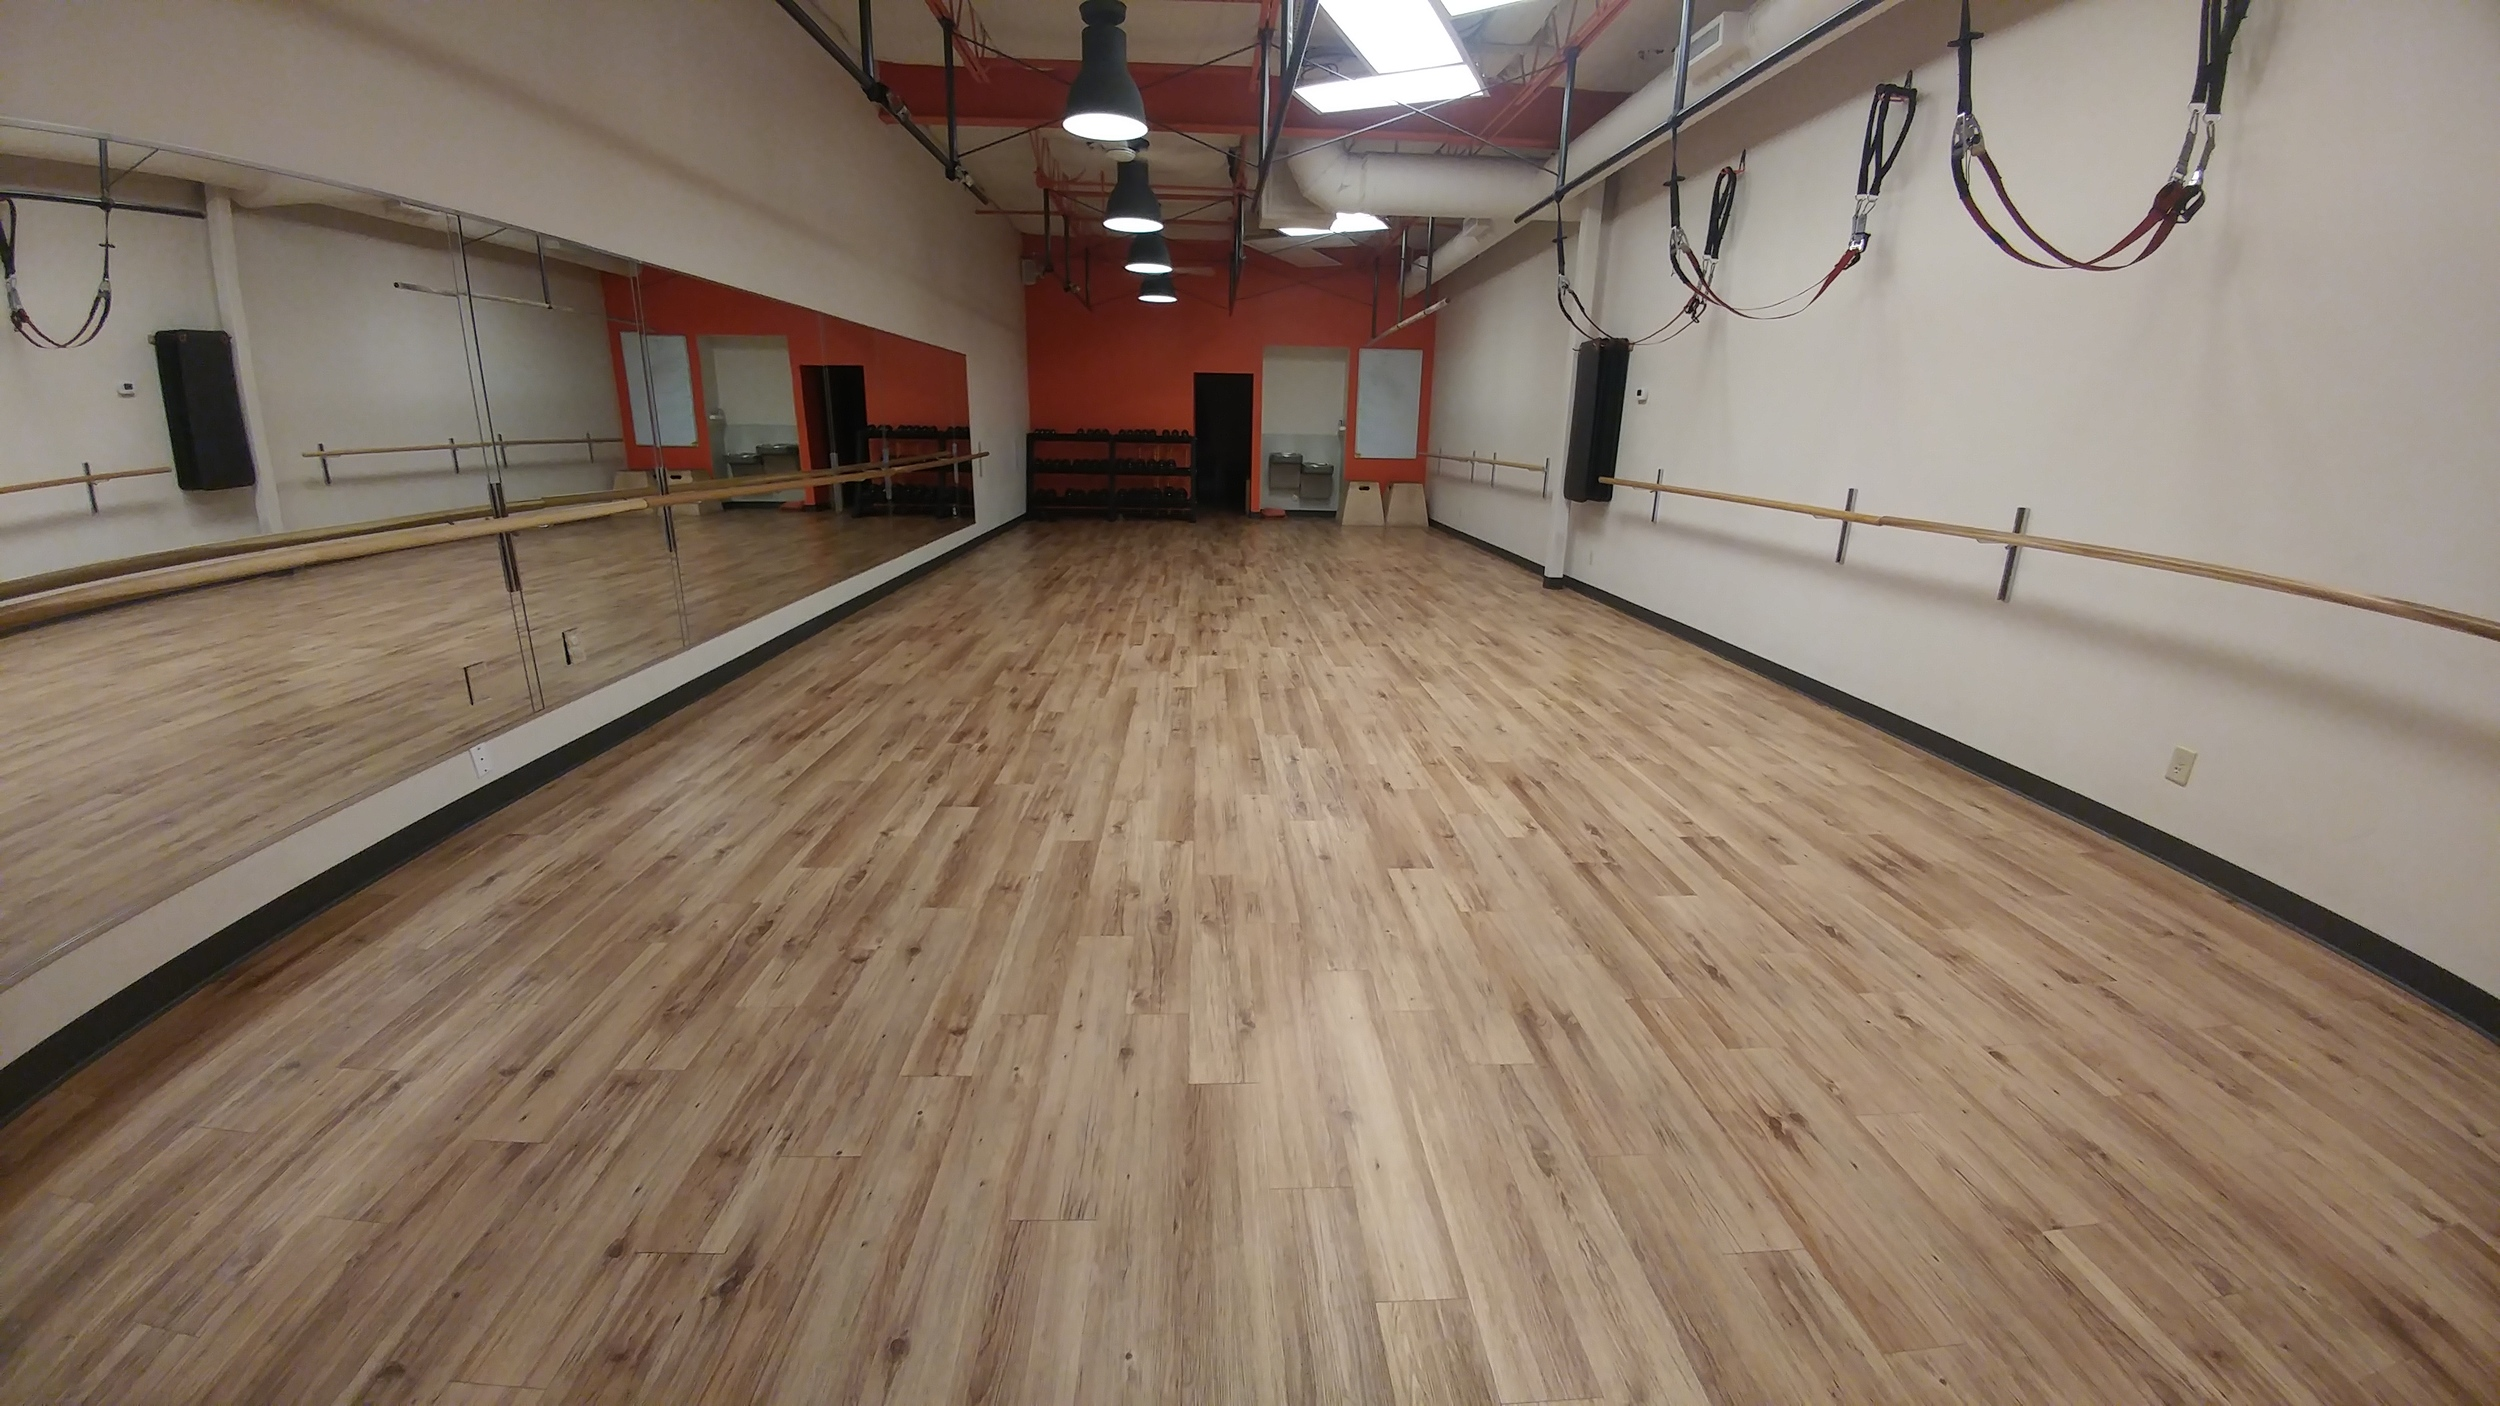 Yoga Space for Rent in Central Austin